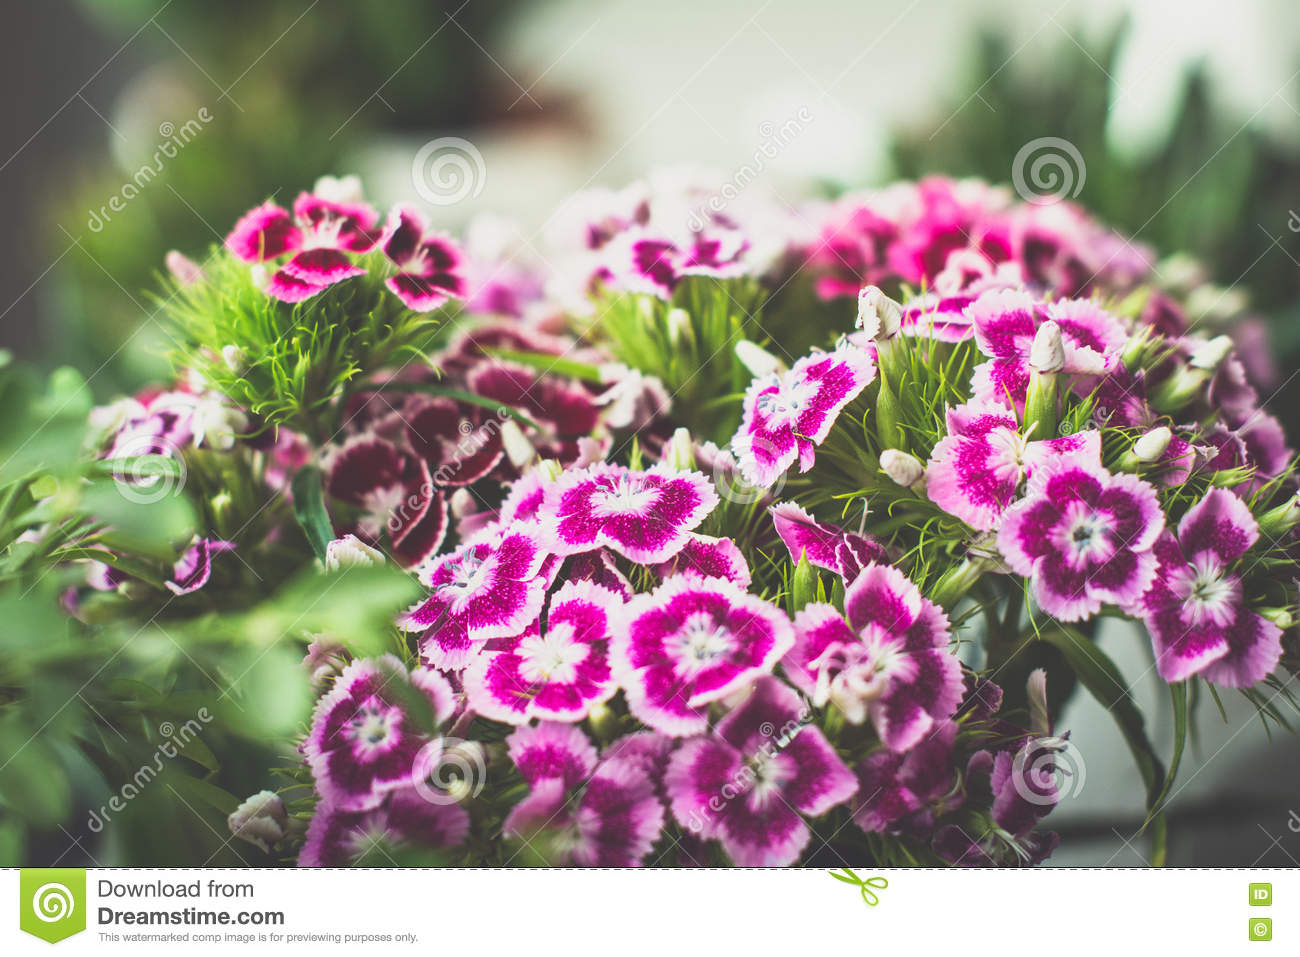 Download Sweet william flowers stock image. Image of card, background - 74693347